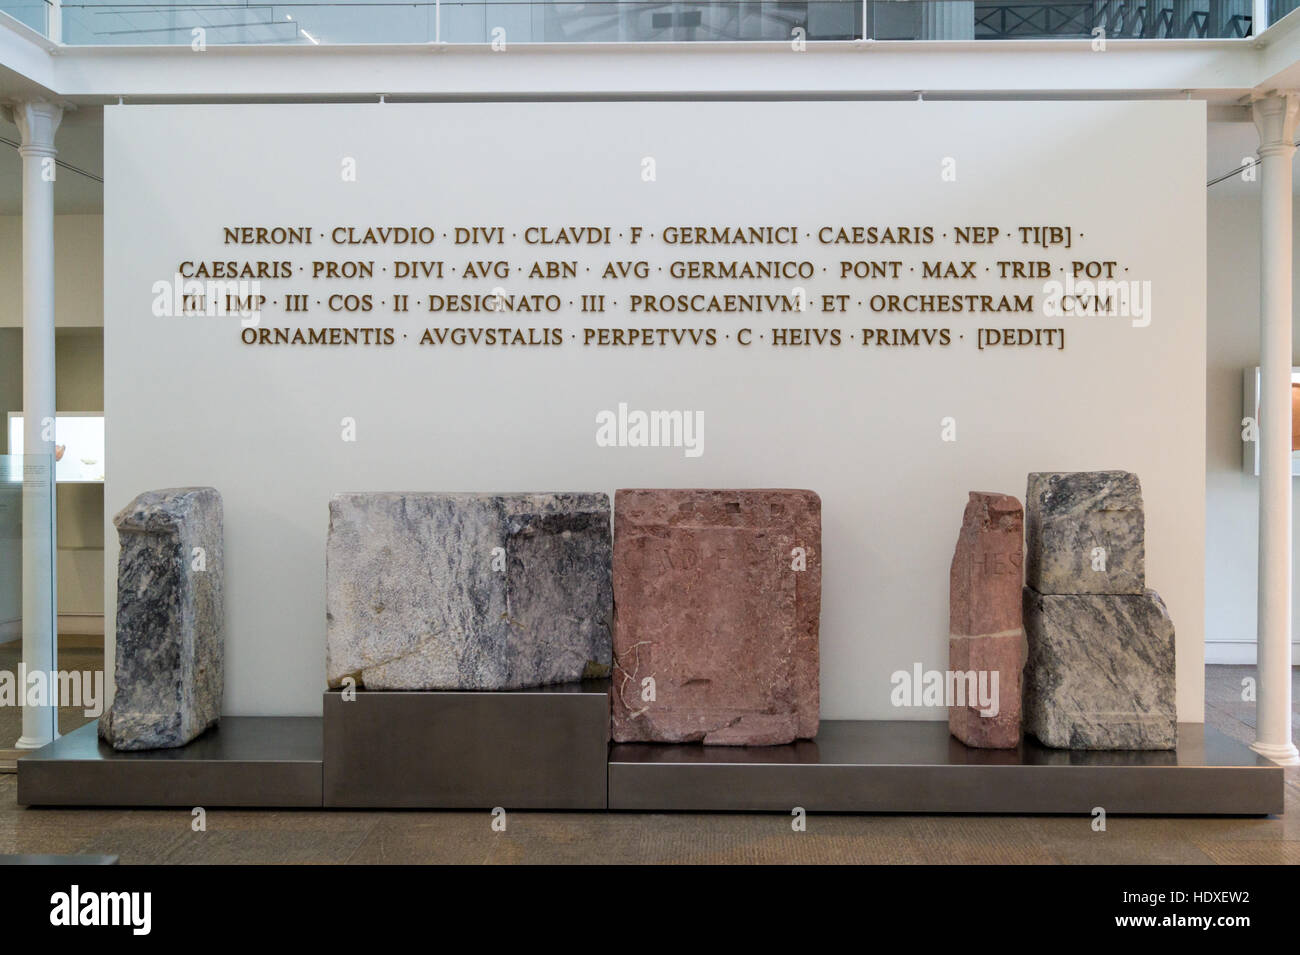 dedication-inscription-roman-theatre-excavation-and-museum-museu-do-HDXEW2.jpg